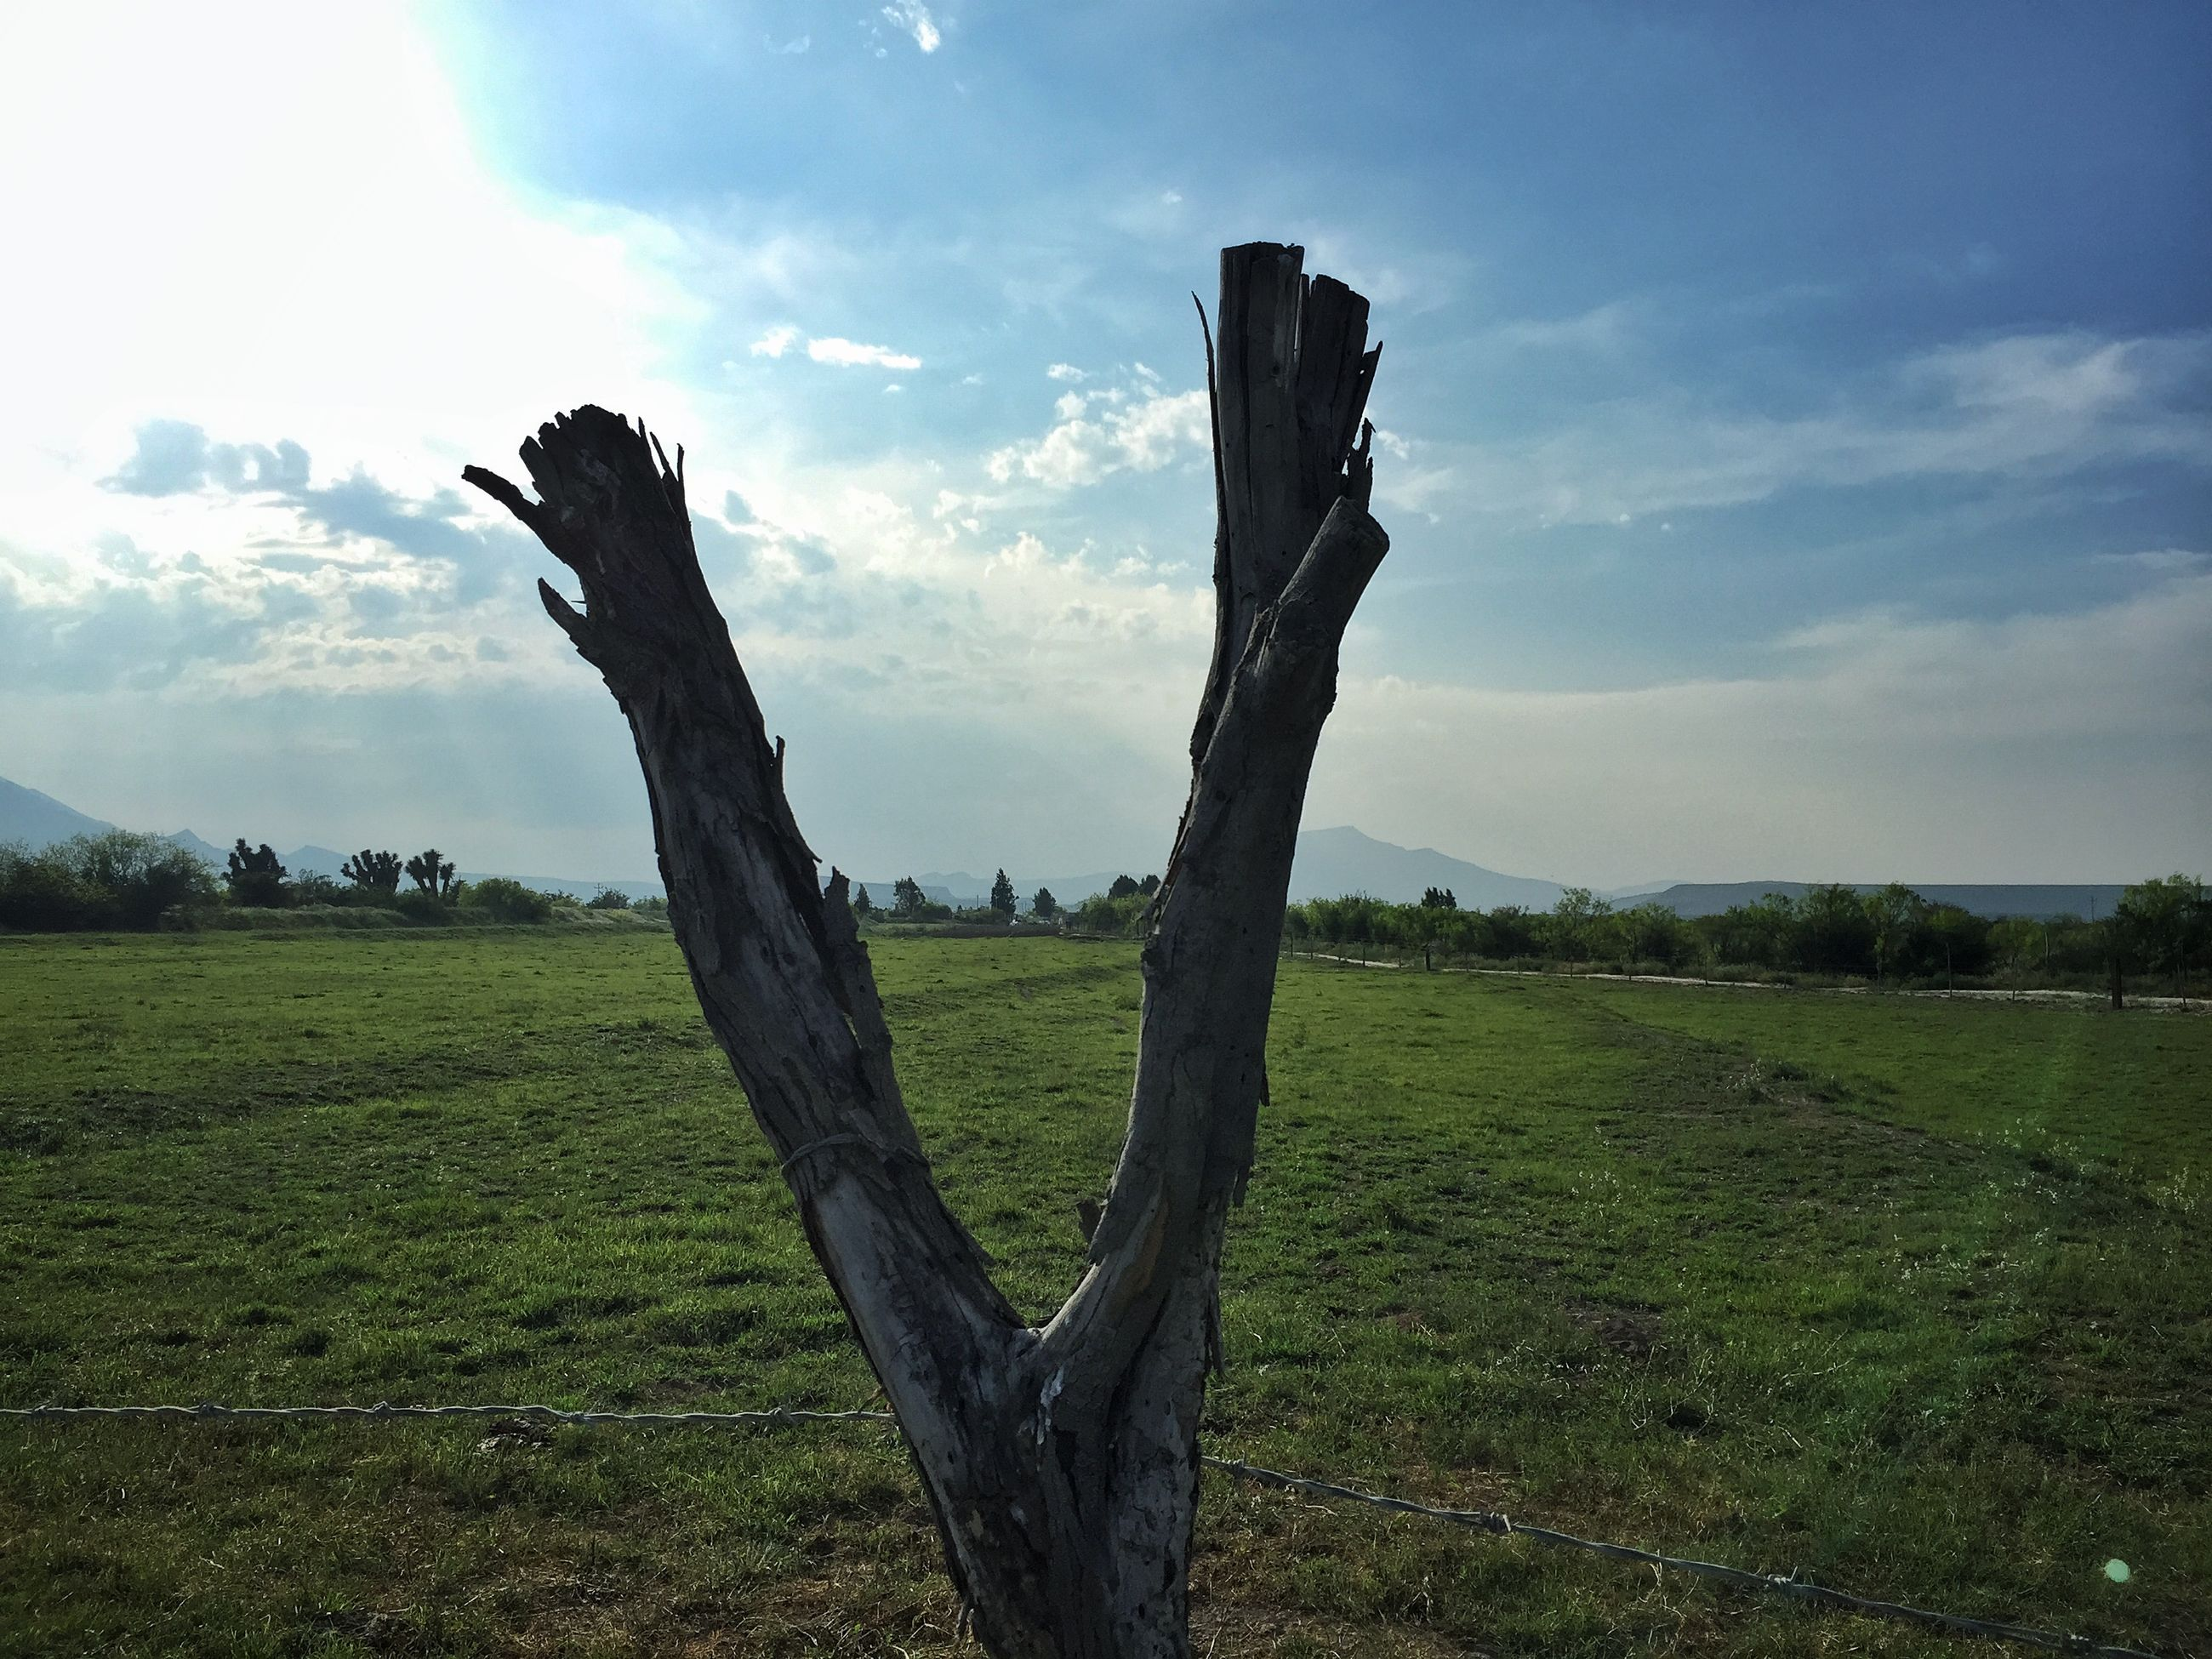 grass, sky, field, tranquility, landscape, tranquil scene, cloud - sky, nature, grassy, growth, scenics, beauty in nature, cloud, green color, tree, cloudy, tree trunk, day, rural scene, non-urban scene